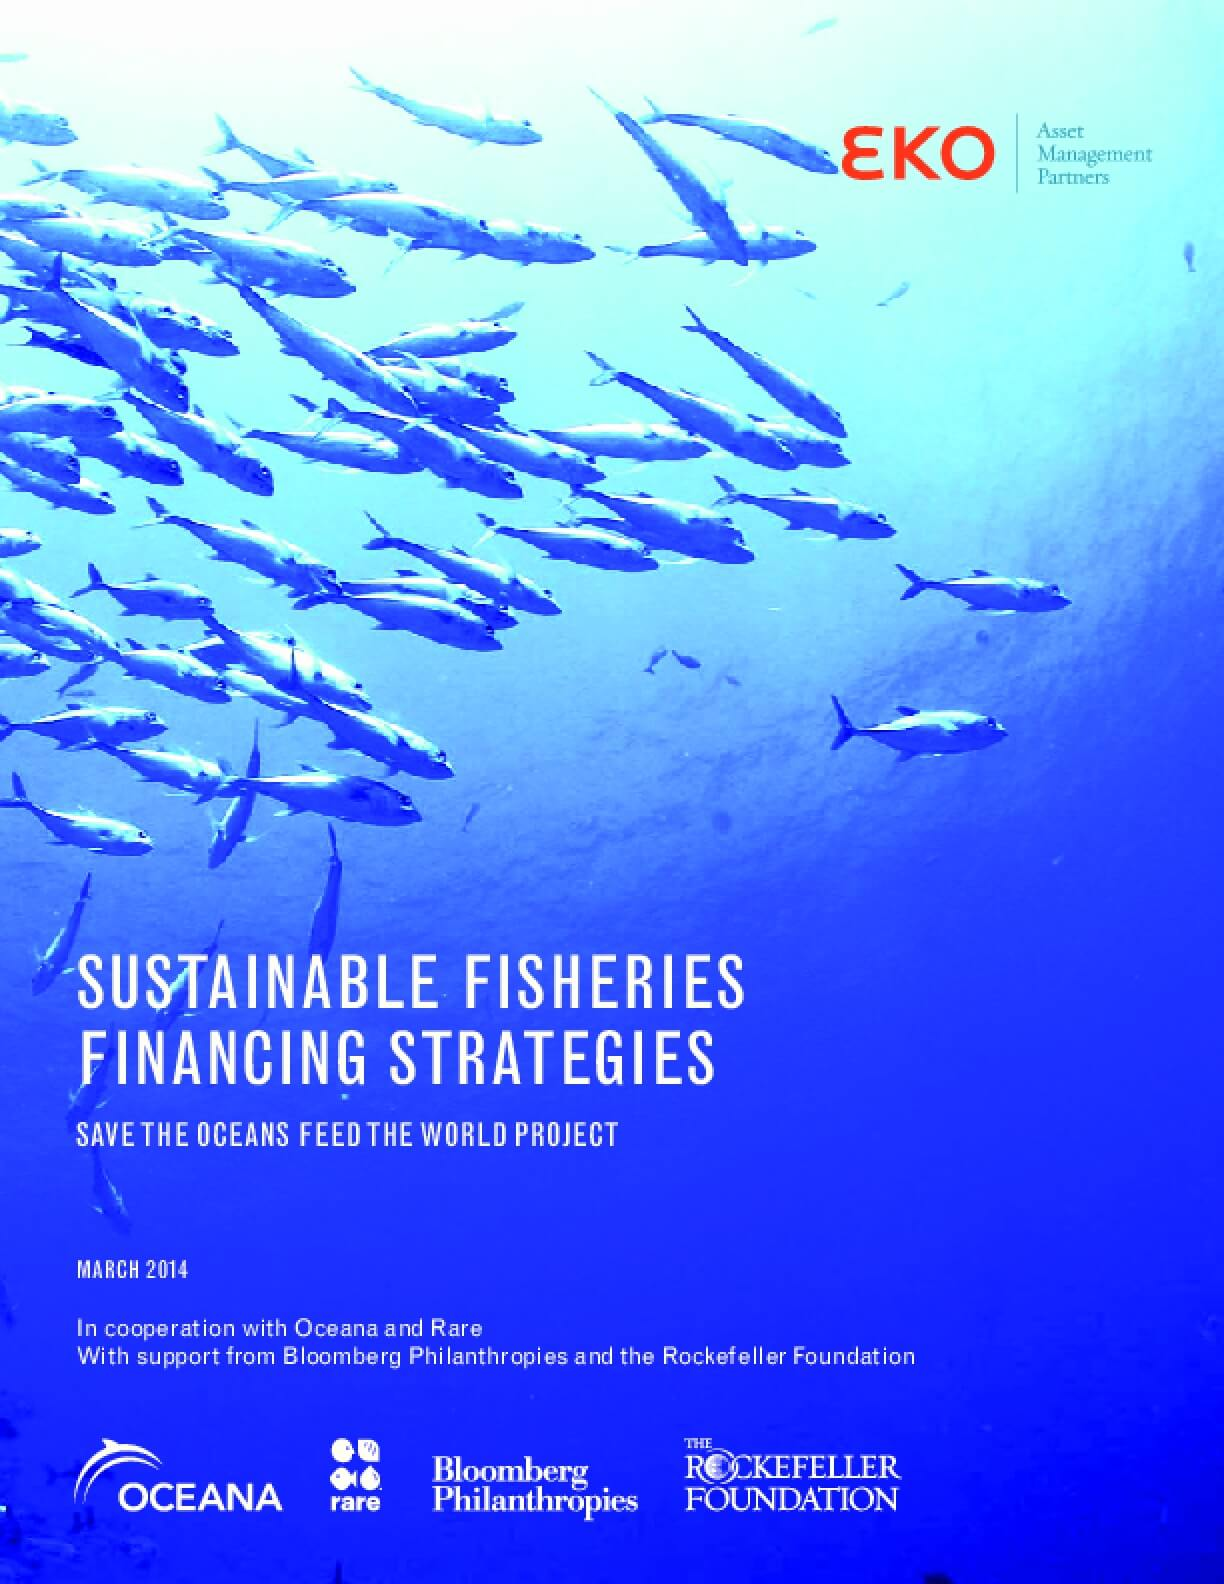 Sustainable Fisheries Financing Strategies: Save the Oceans Feed the World Project